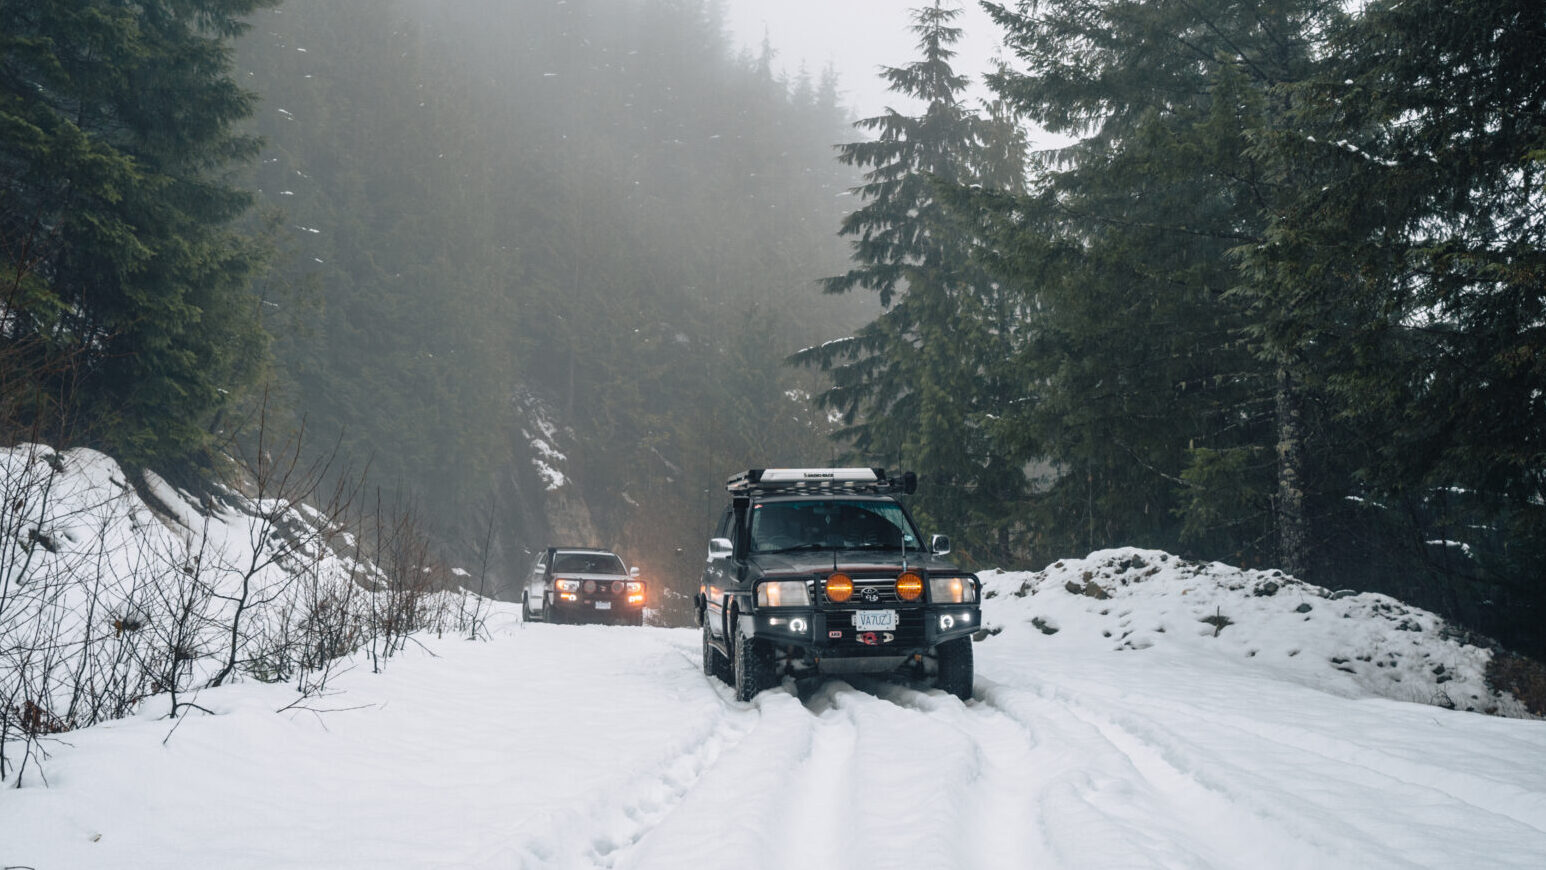 Toyota Landcruiser 100 series and 4runner in snow